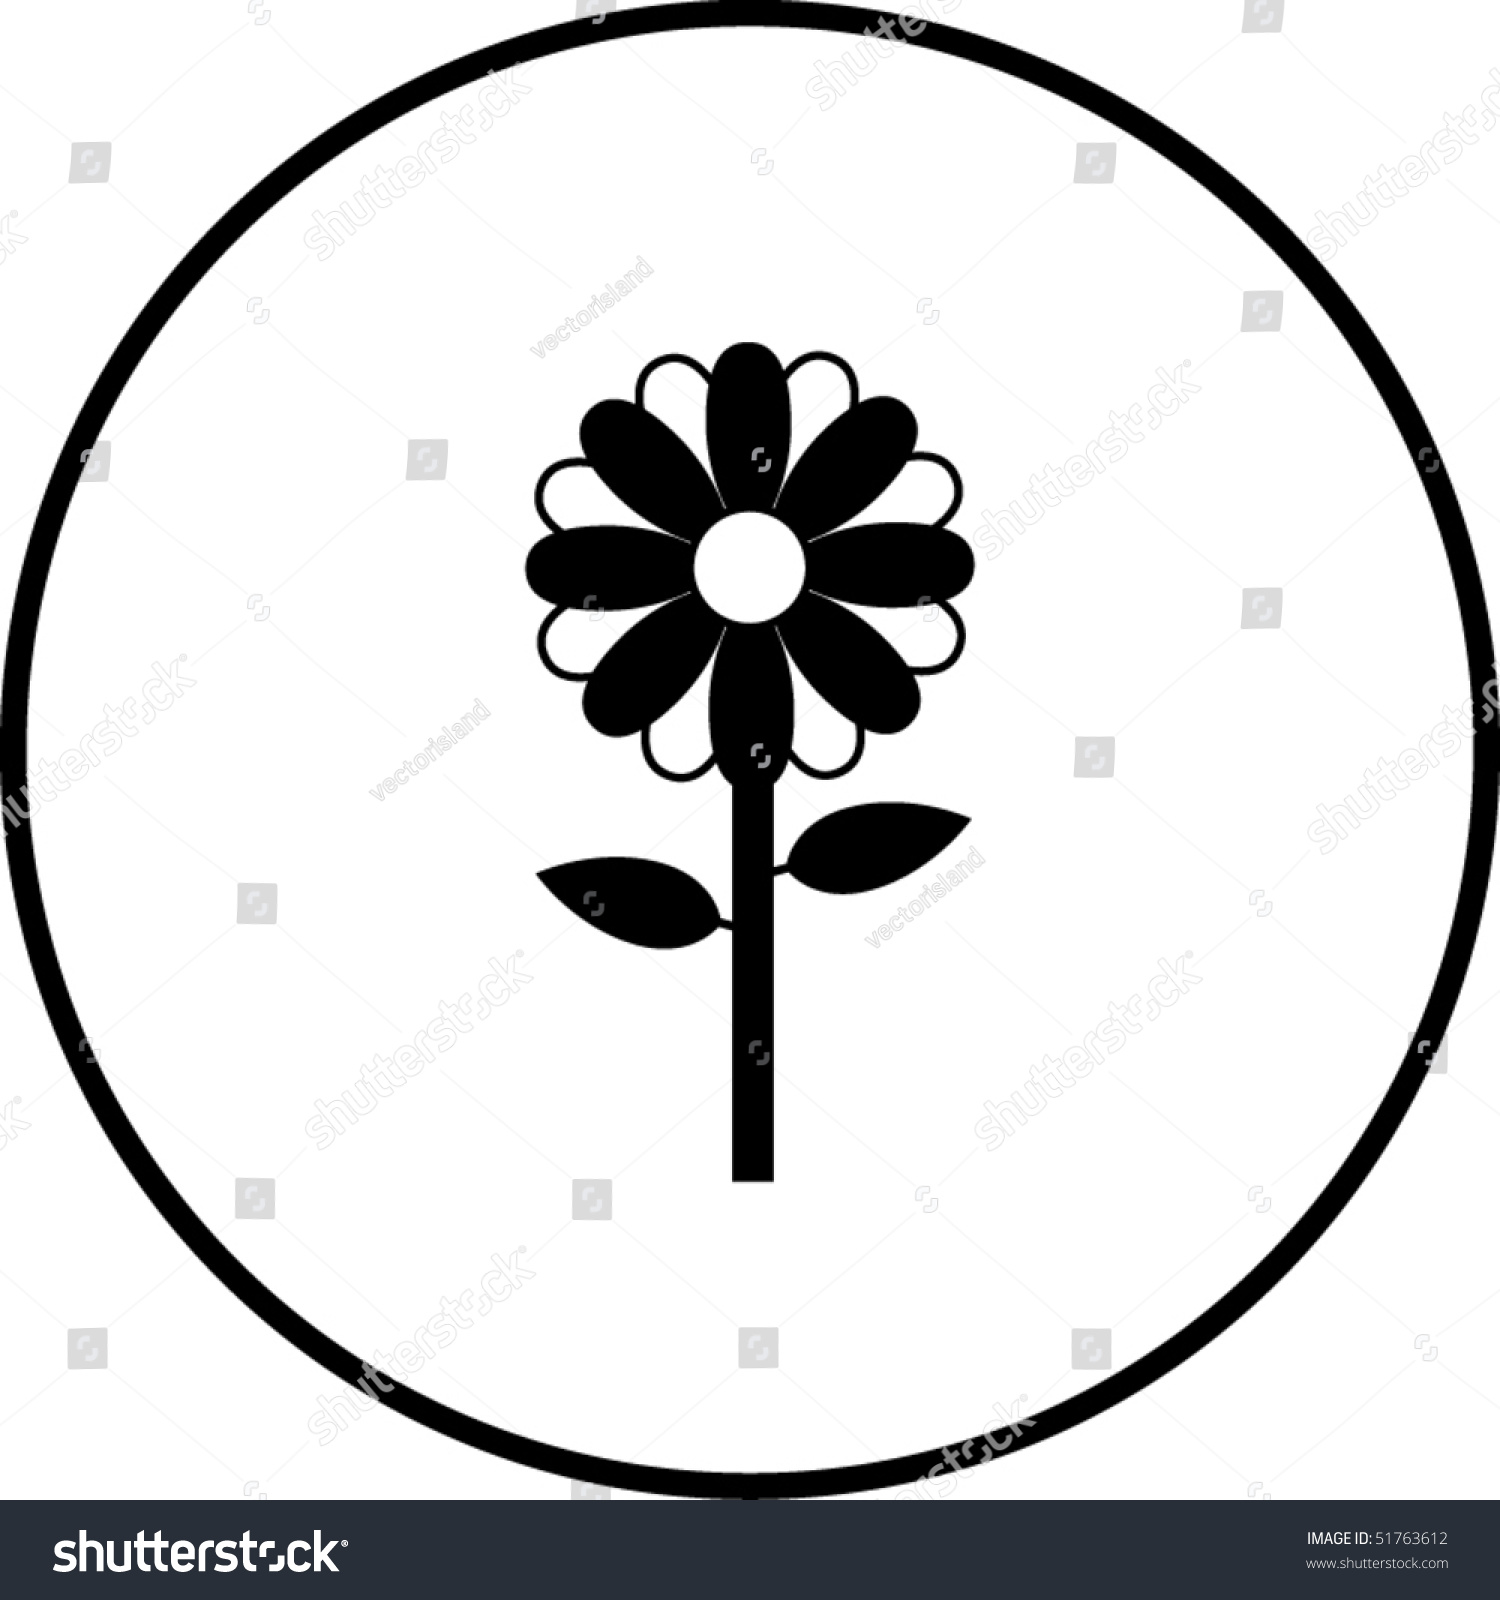 Flower Symbol Stock Vector Illustration Shutterstock